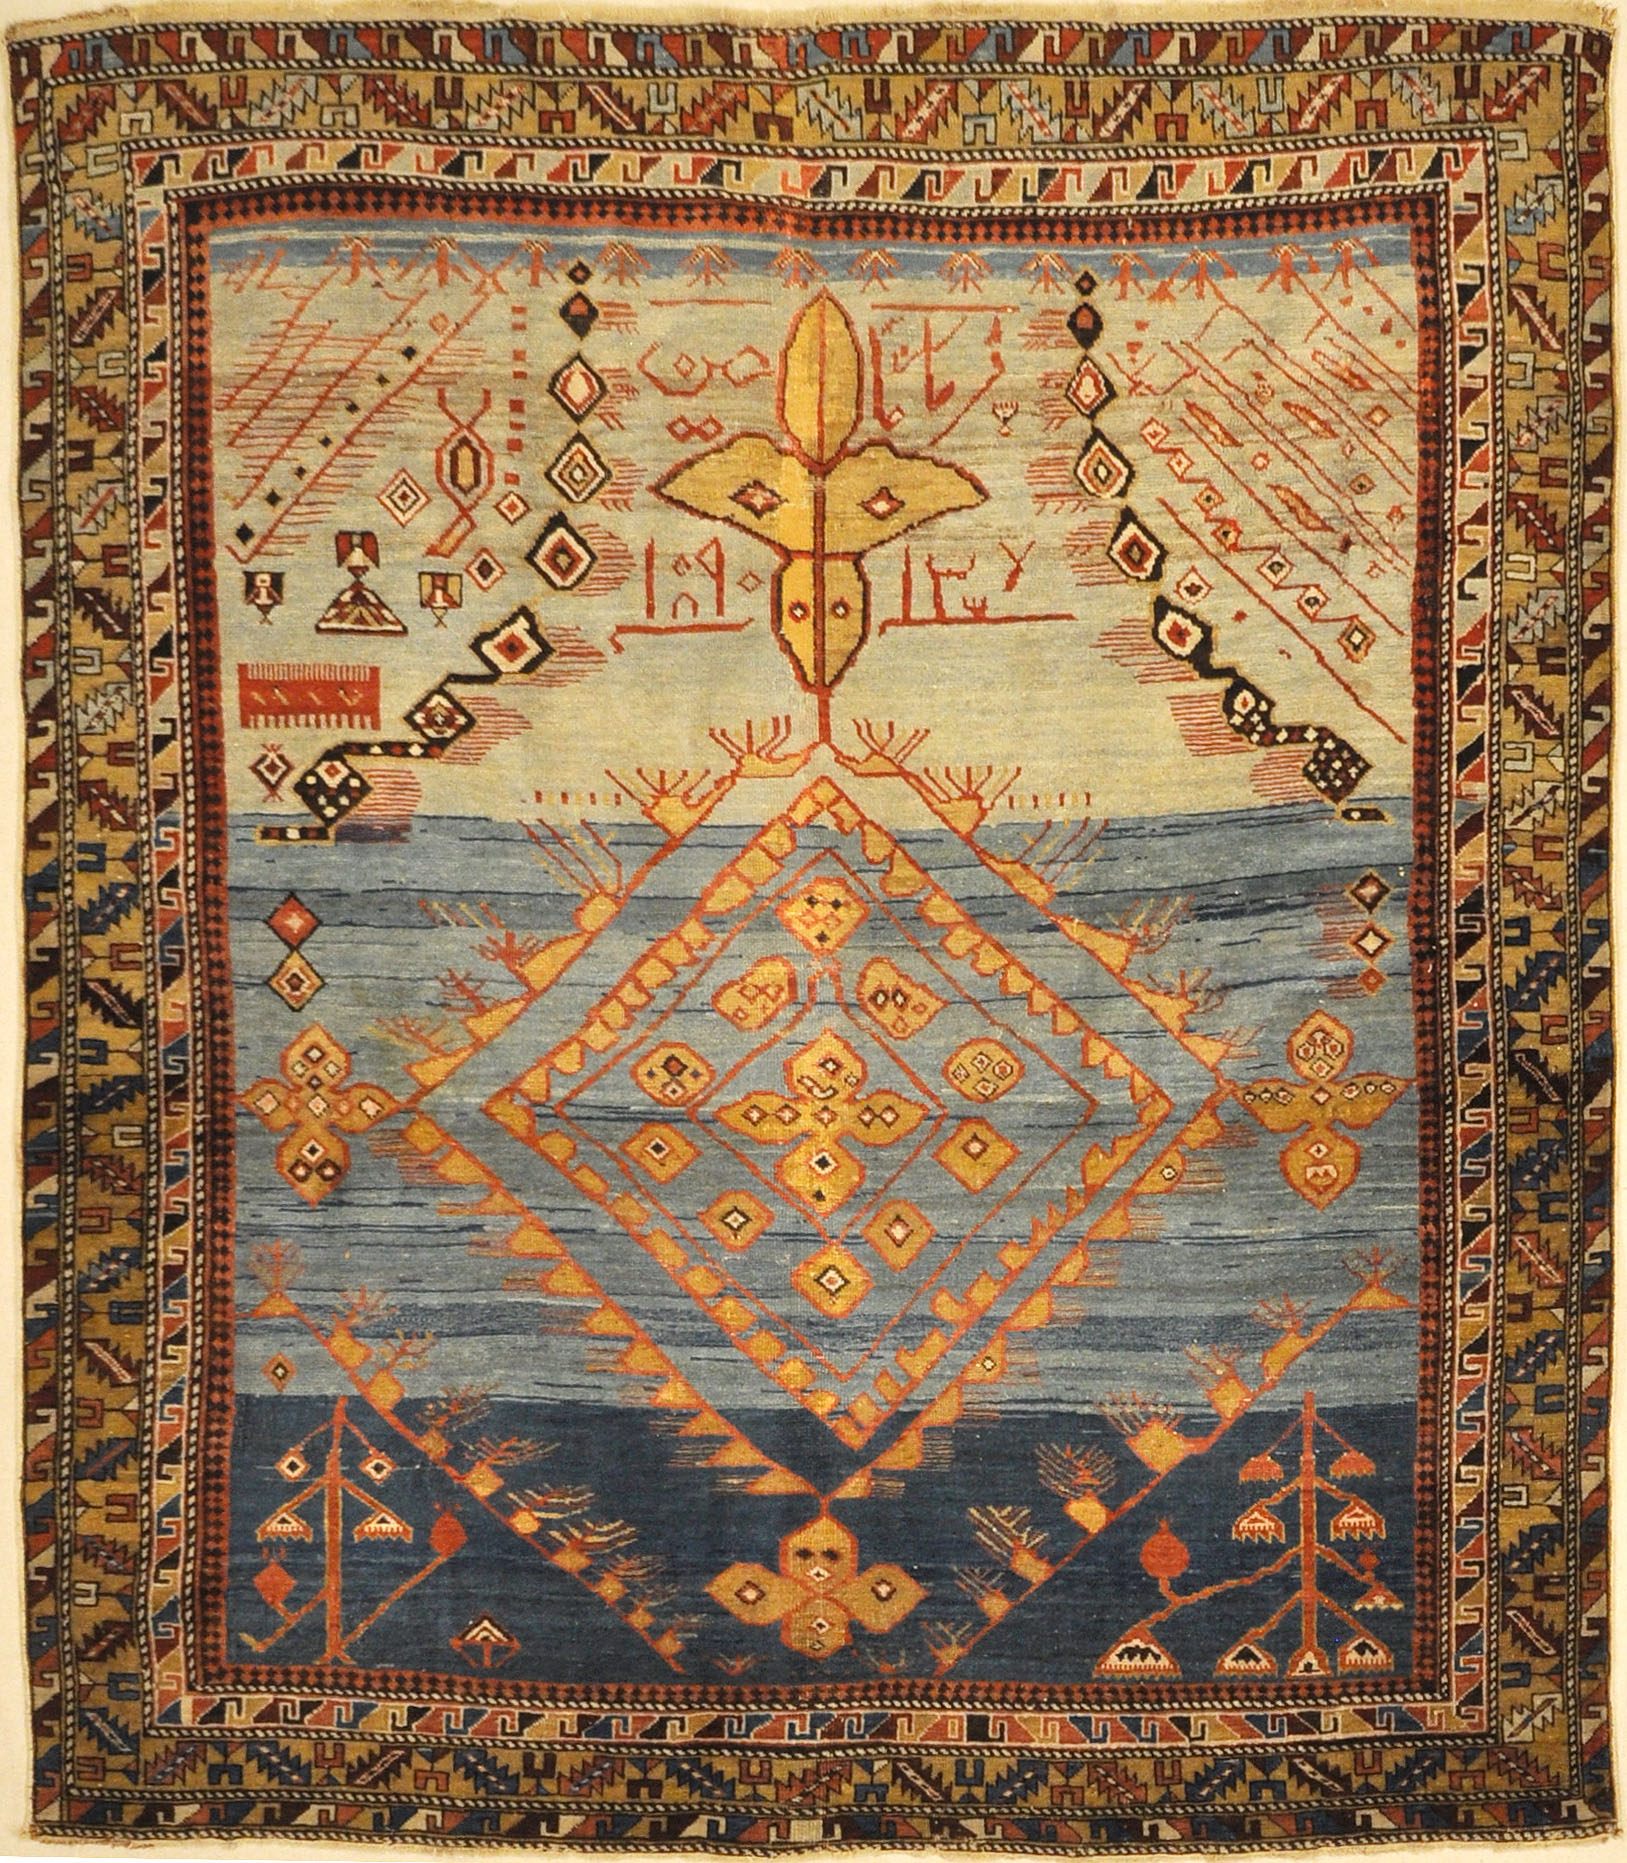 Best Caucasian Shirvan Prayer rug in the world RUGOHOLIC Rug. A piece of genuine authentic woven carpet art sold at Santa Barbara Design Center Rugs and More.